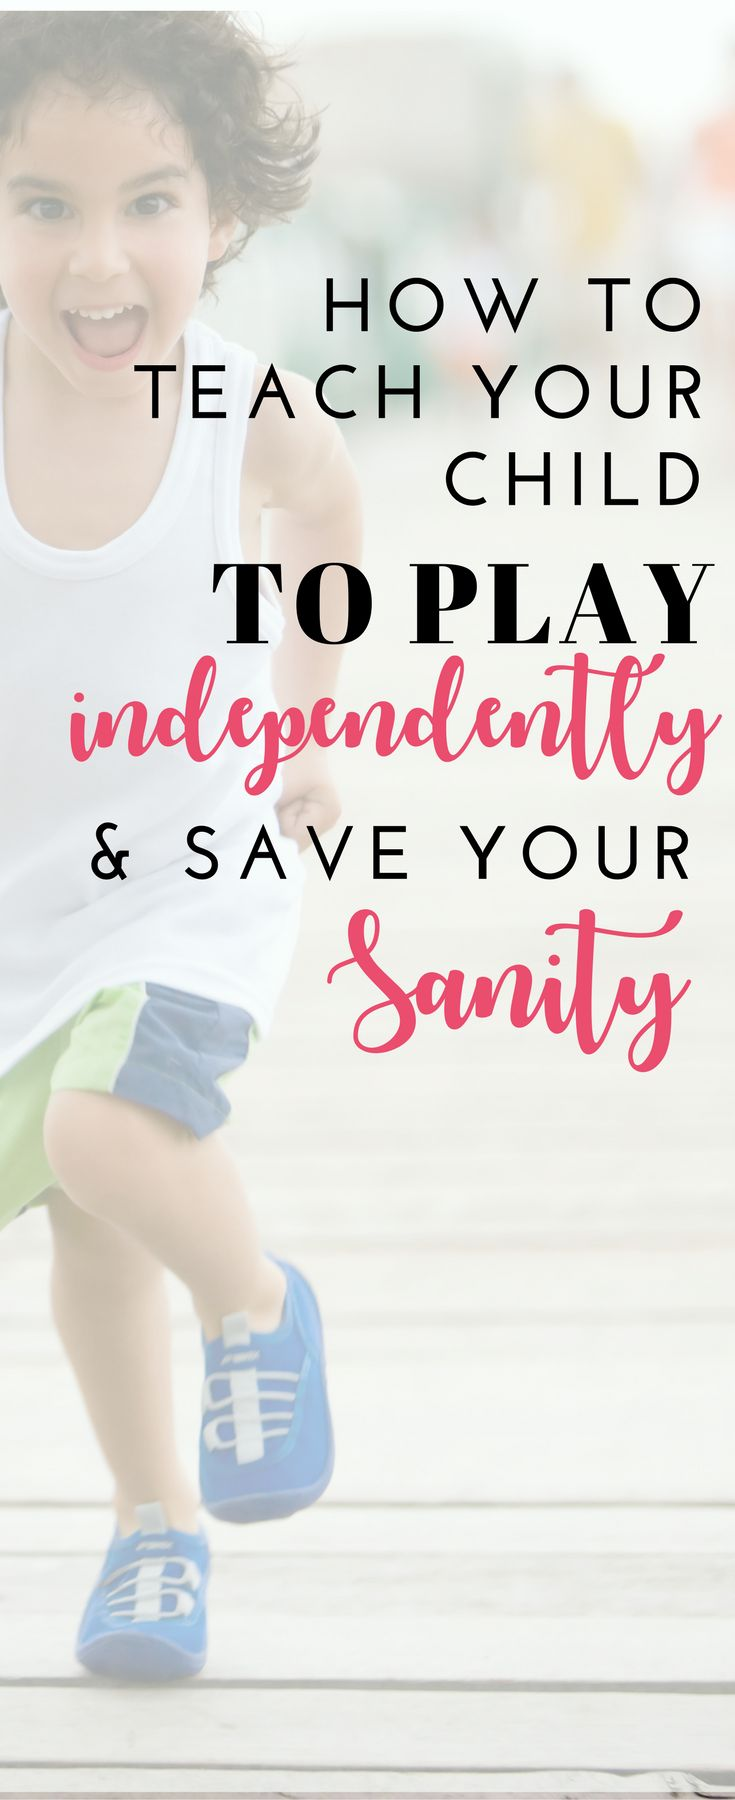 Finally someone is honest about how hard it is to play with your children all day!